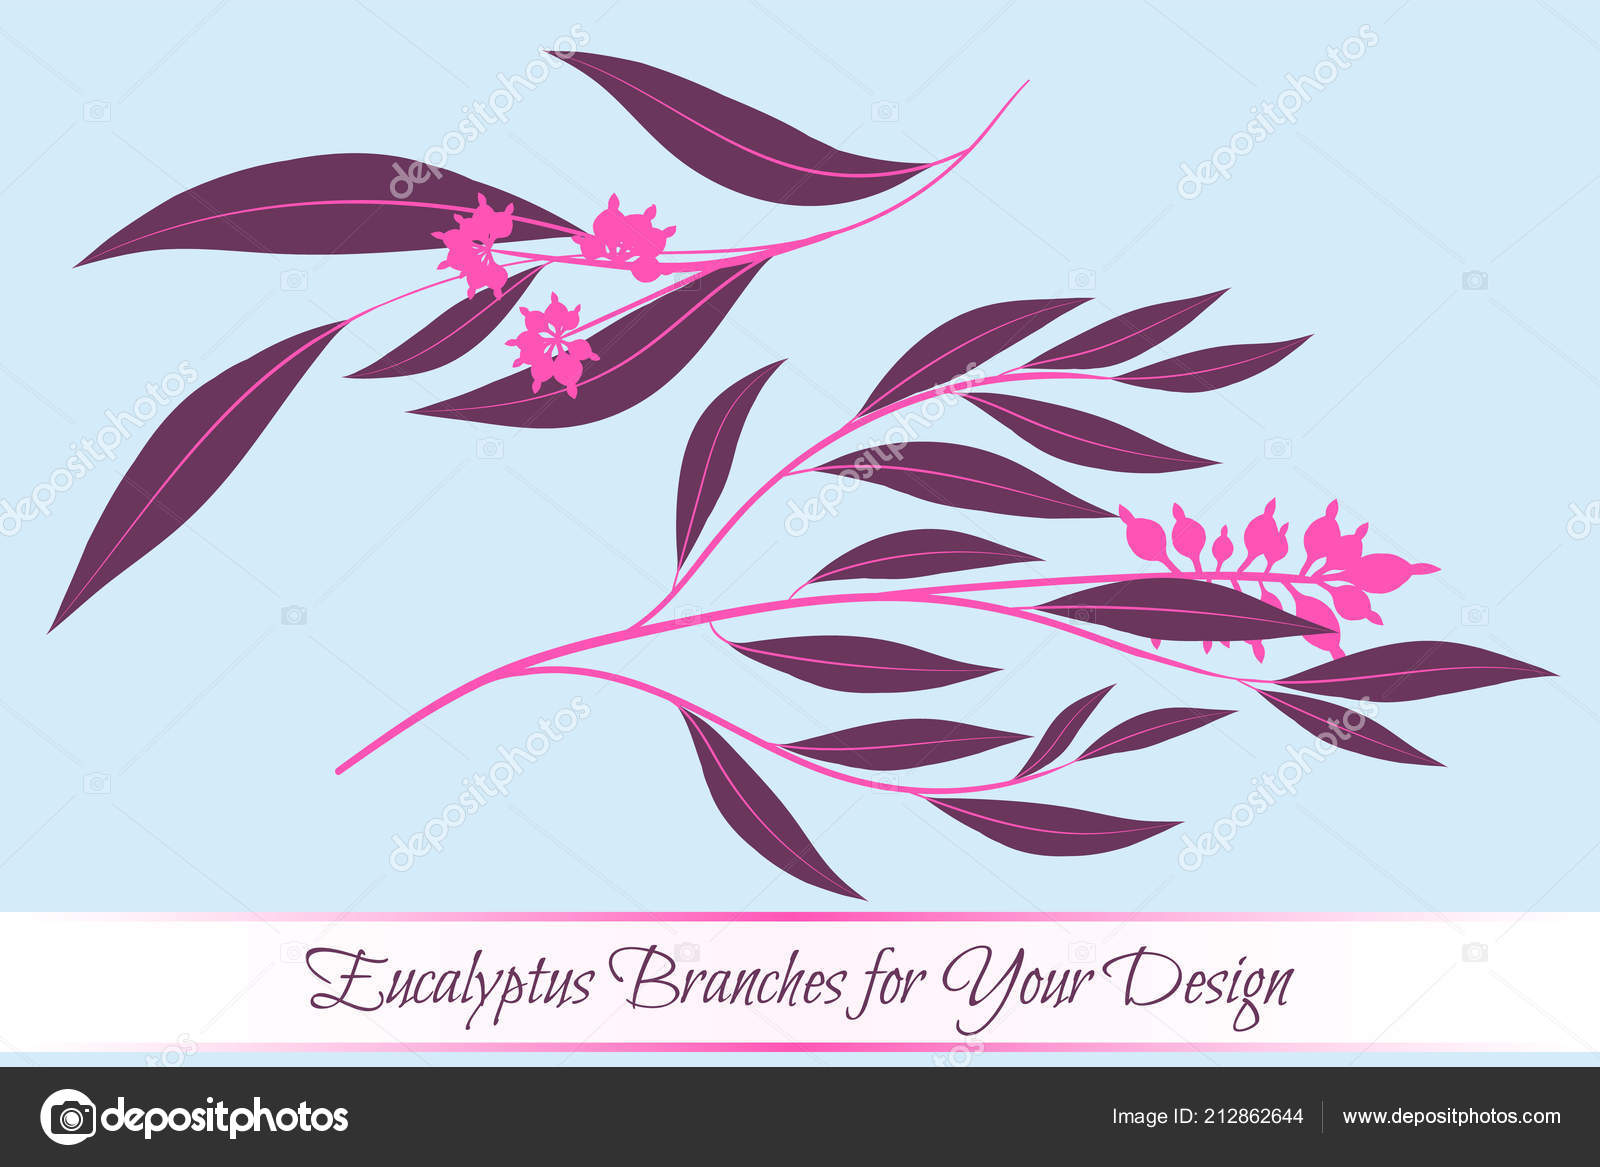 Eucalyptus vector decorative vector leaves and branches elegant eucalyptus vector decorative vector leaves and branches elegant foliage beautiful floral element for stopboris Image collections